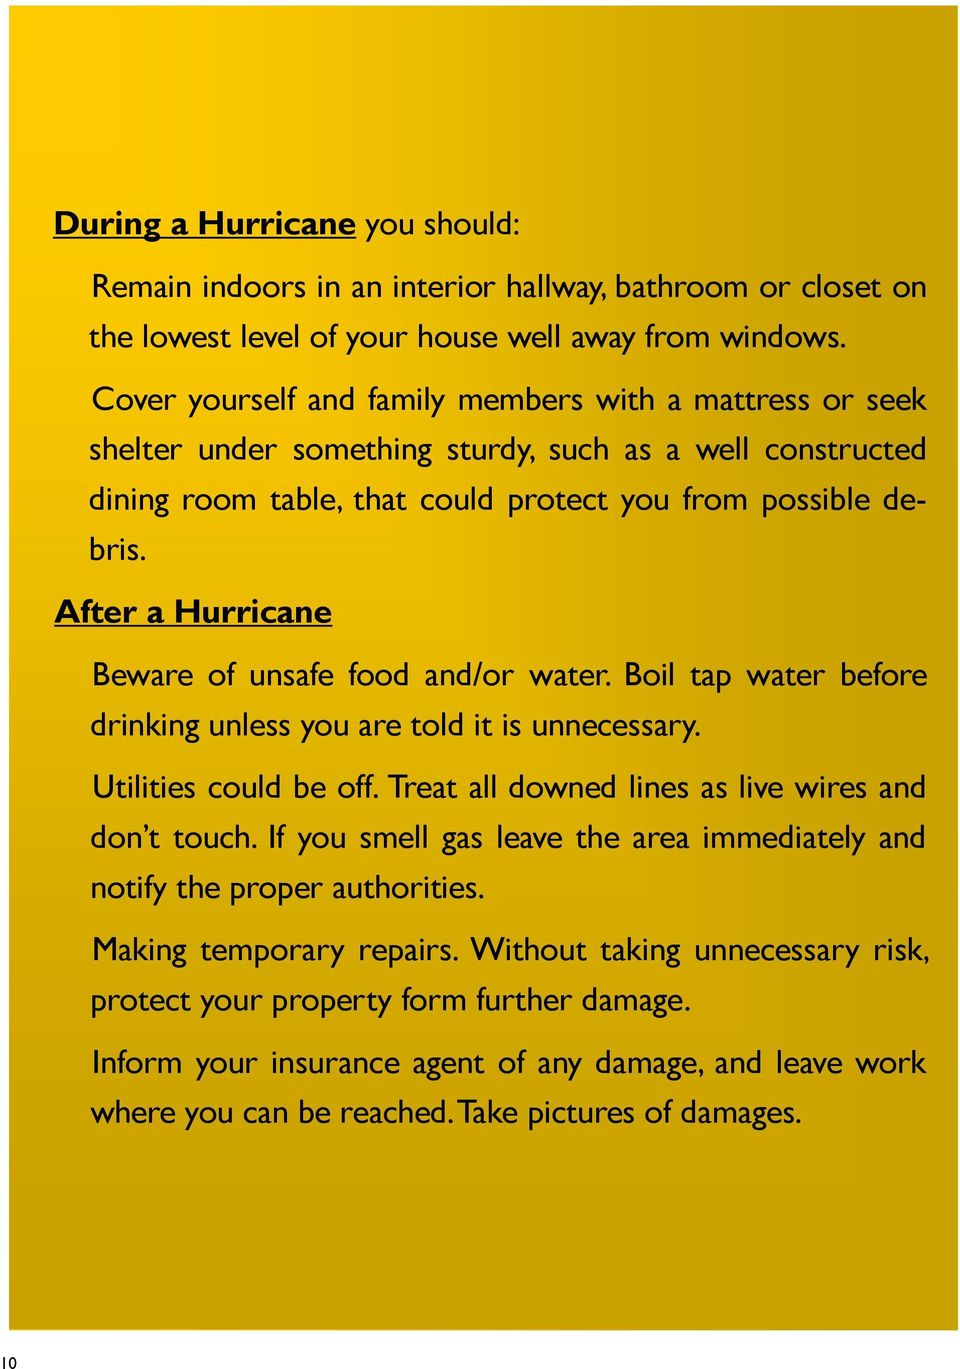 After a Hurricane Beware of unsafe food and/or water. Boil tap water before drinking unless you are told it is unnecessary. Utilities could be off.